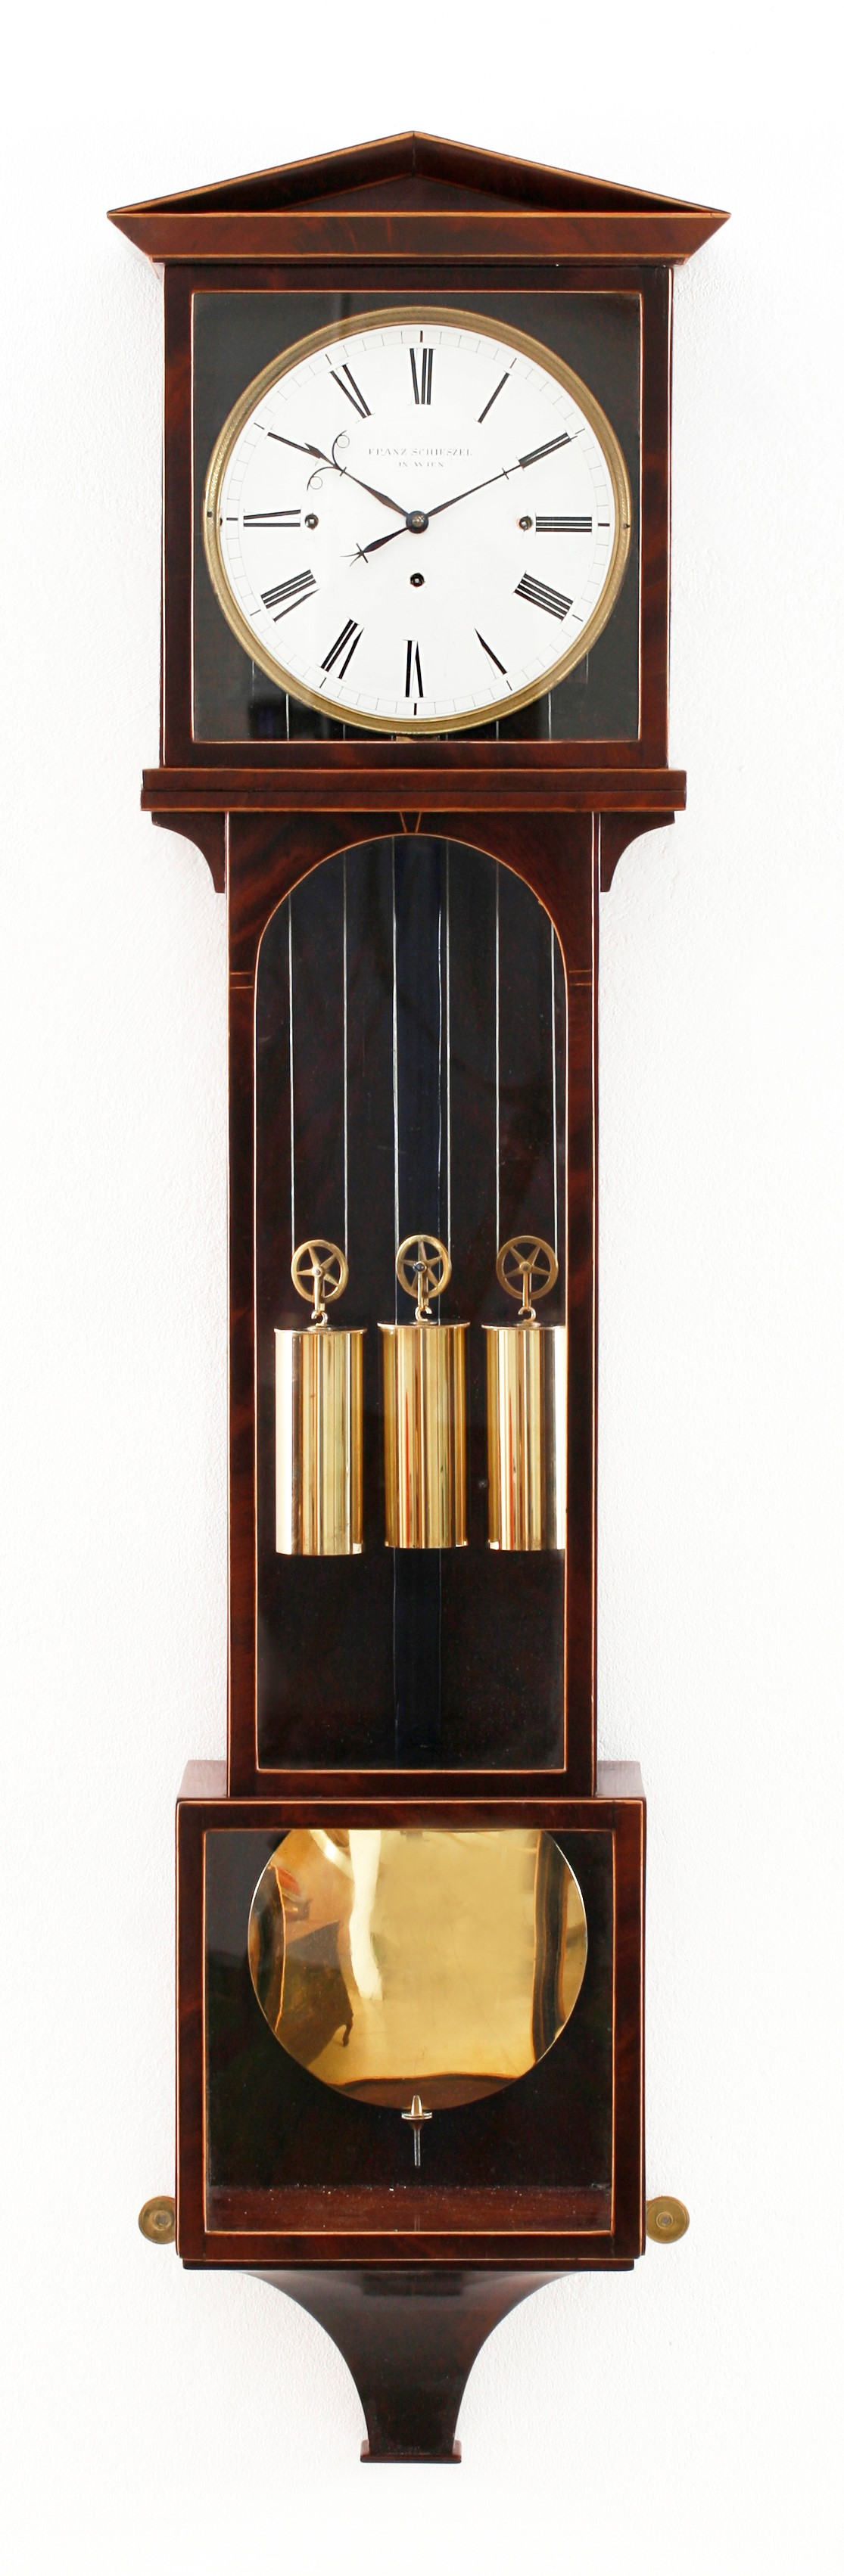 Laterndl clock by Franz Schieszel with 7 days duration, c. 1820.